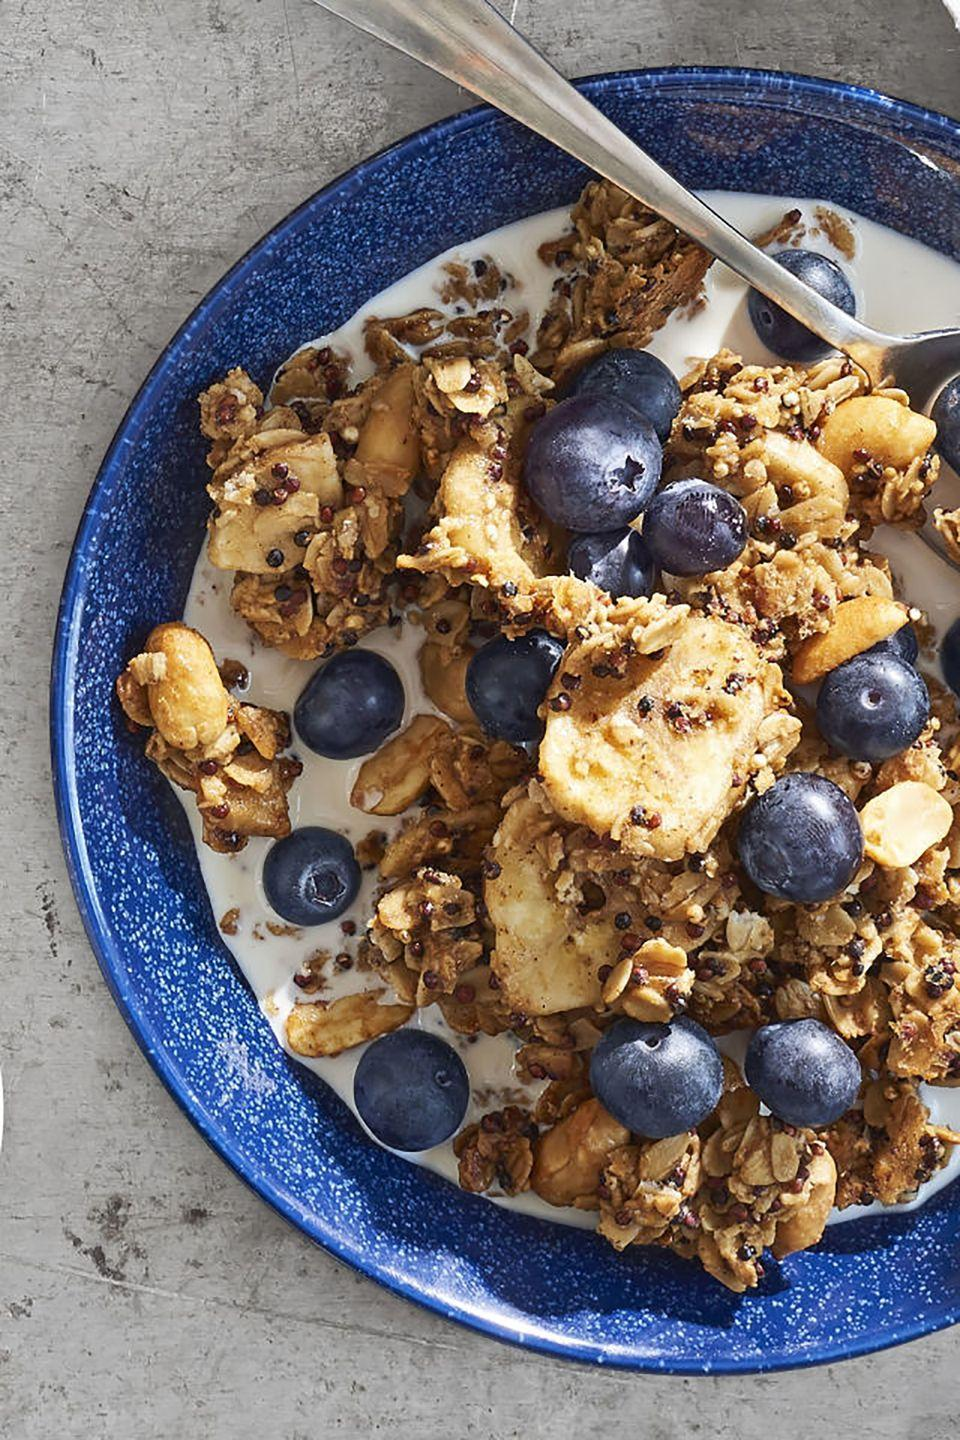 """<p>If you're planning to make some healthy changes, this hearty breakfast will get you started on the right foot. And it's tasty!</p><p><strong><a href=""""https://www.countryliving.com/food-drinks/recipes/a41654/peanut-butter-banana-bread-granola-recipe/"""" rel=""""nofollow noopener"""" target=""""_blank"""" data-ylk=""""slk:Get the recipe"""" class=""""link rapid-noclick-resp"""">Get the recipe</a>.</strong></p><p><a class=""""link rapid-noclick-resp"""" href=""""https://www.amazon.com/dp/B0017145PC/?tag=syn-yahoo-20&ascsubtag=%5Bartid%7C10050.g.34822192%5Bsrc%7Cyahoo-us"""" rel=""""nofollow noopener"""" target=""""_blank"""" data-ylk=""""slk:SHOP BAKING SHEETS"""">SHOP BAKING SHEETS</a> </p>"""